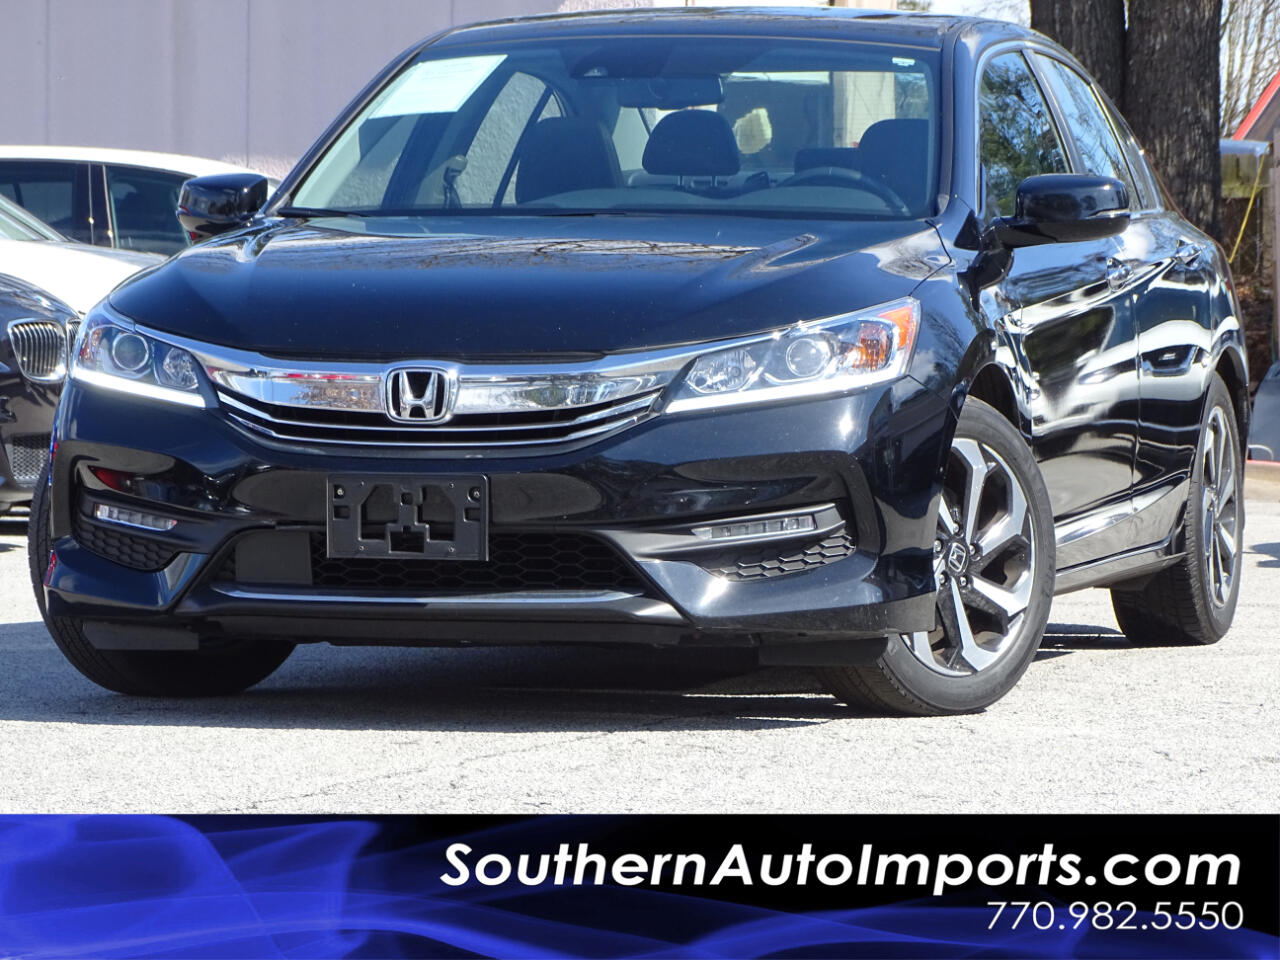 2016 Honda Accord Sedan EX-L w/Navigation and Honda Sensing